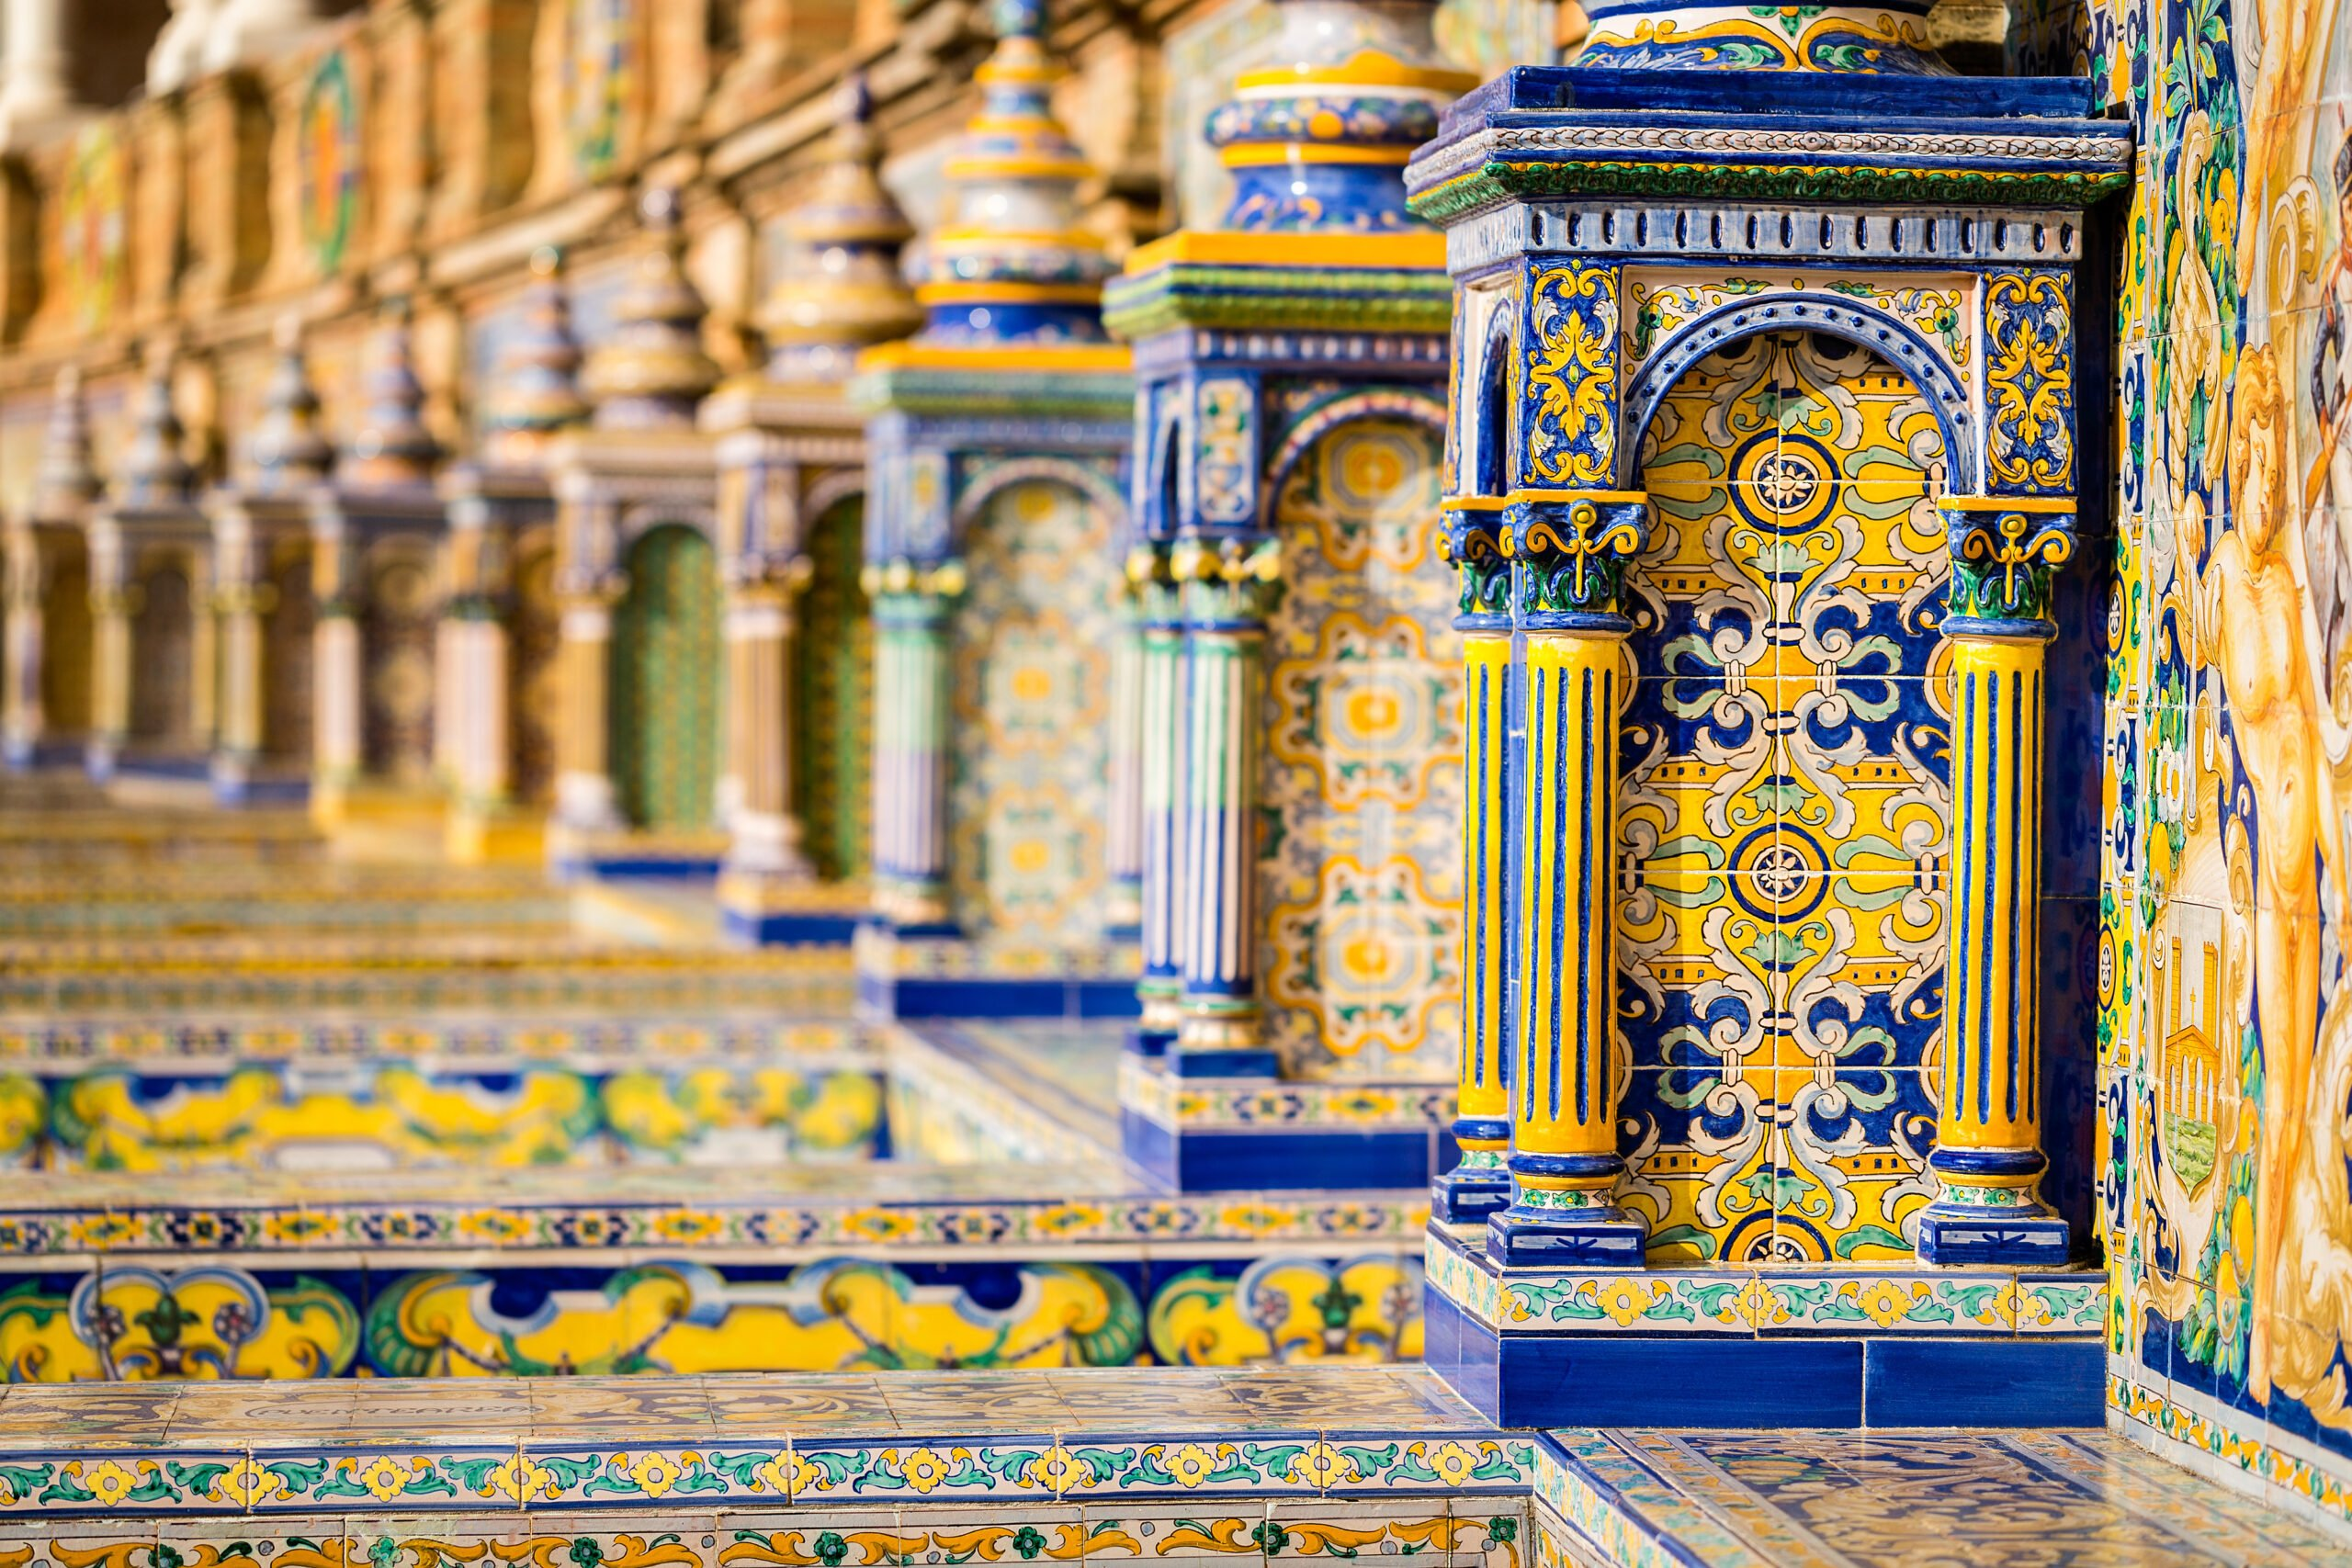 Discover The Colors Of Seville On The On The Women Of Seville Walking Tour